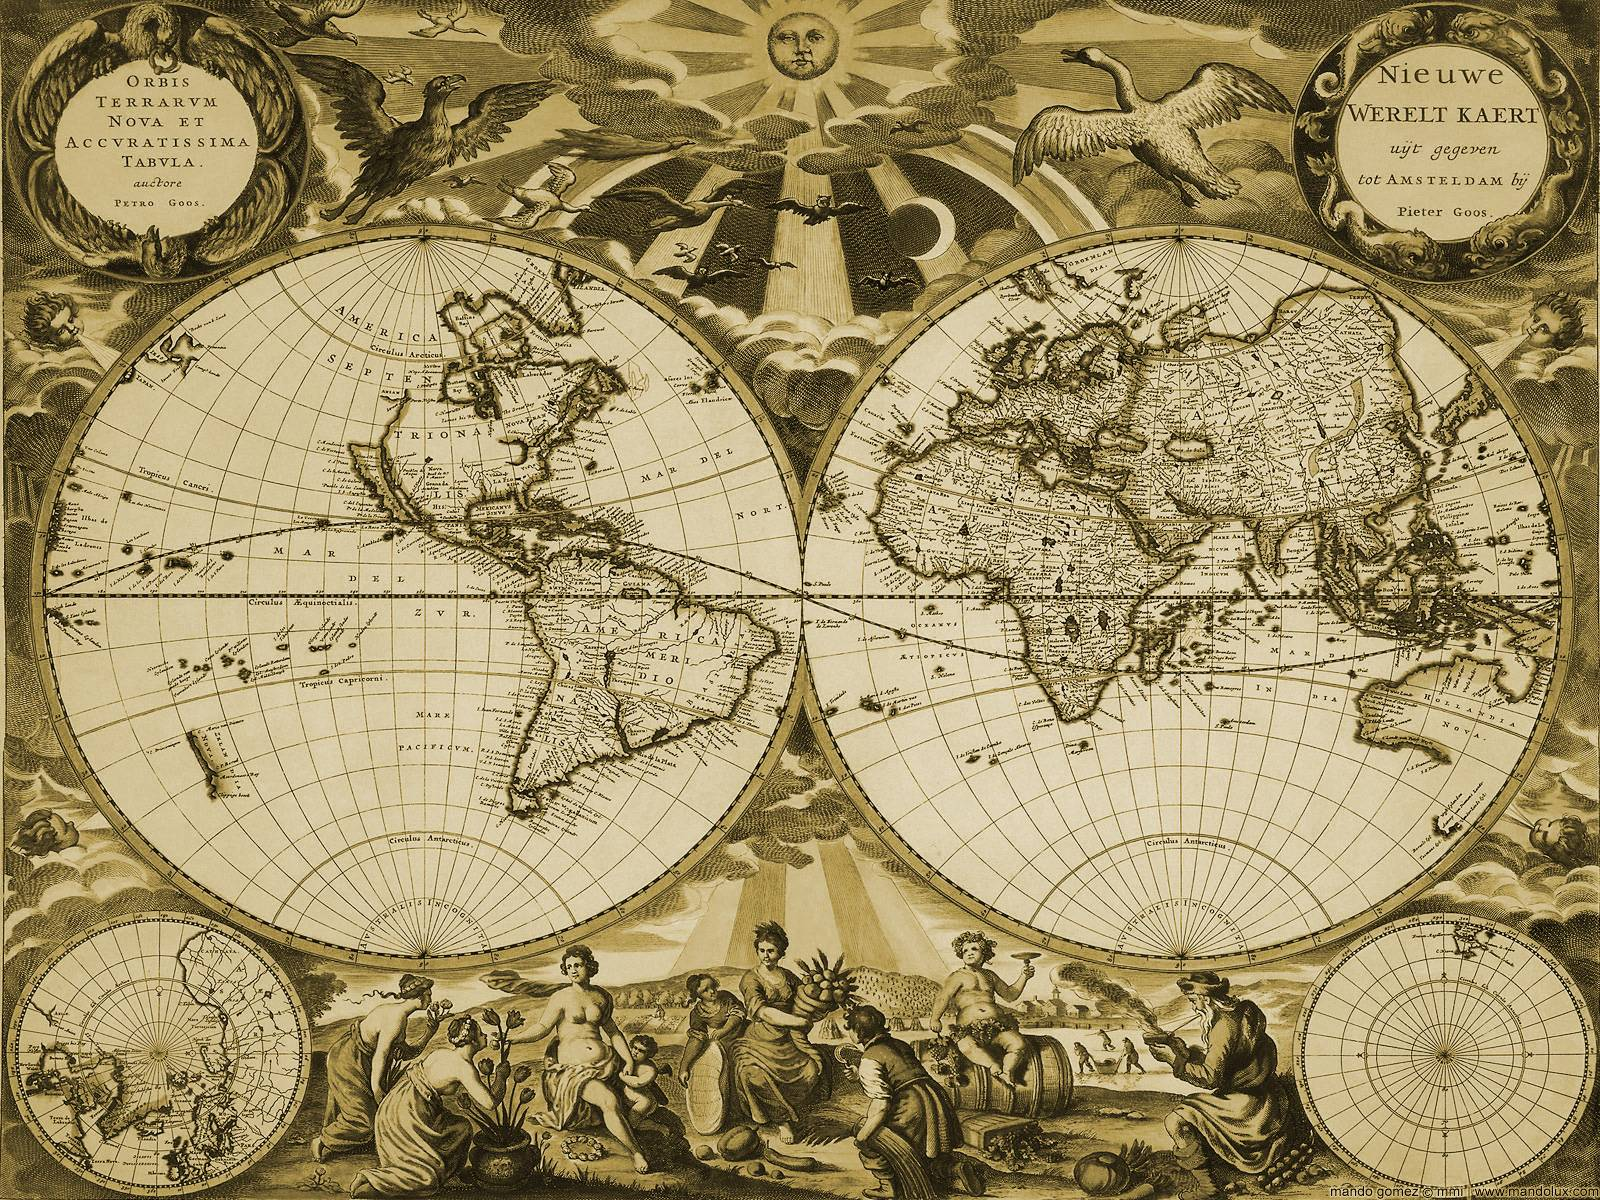 Antique world map wallpaper sf wallpaper vintage map wallpapers wallpaper cave gumiabroncs Choice Image